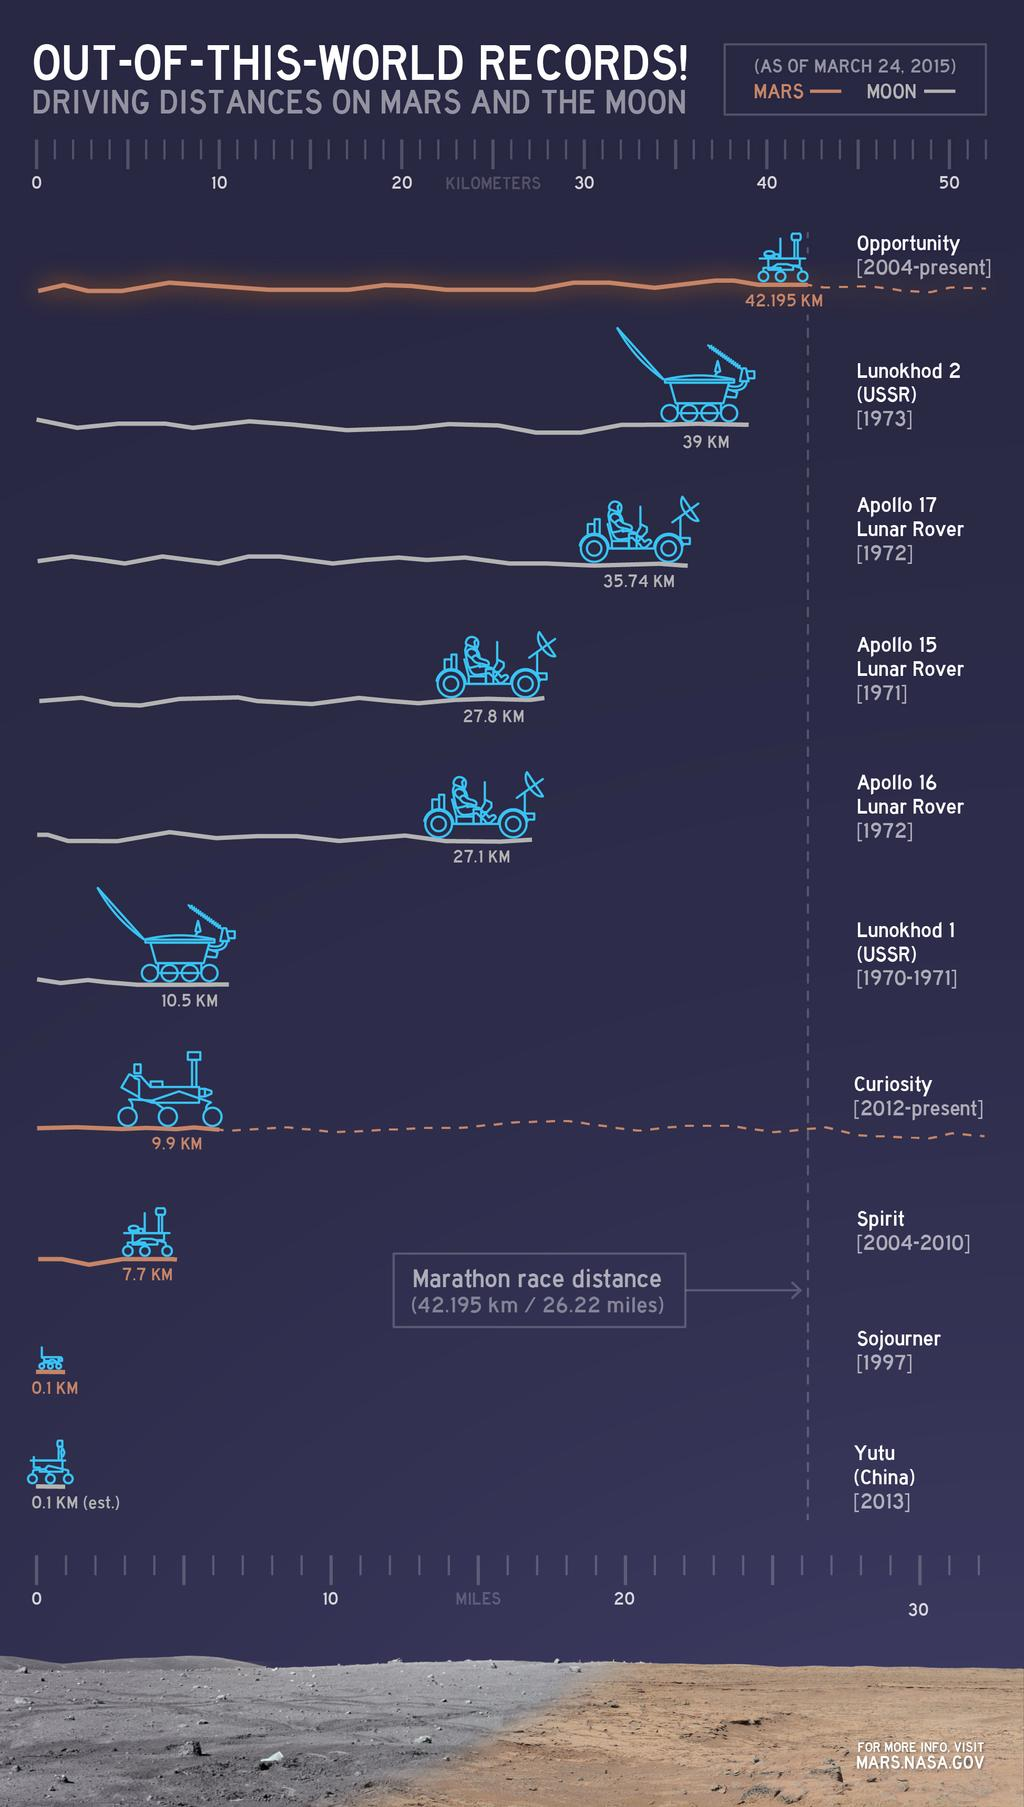 This chart illustrates comparisons among the distances driven by various wheeled vehicles on the surface of Earth's moon and Mars.